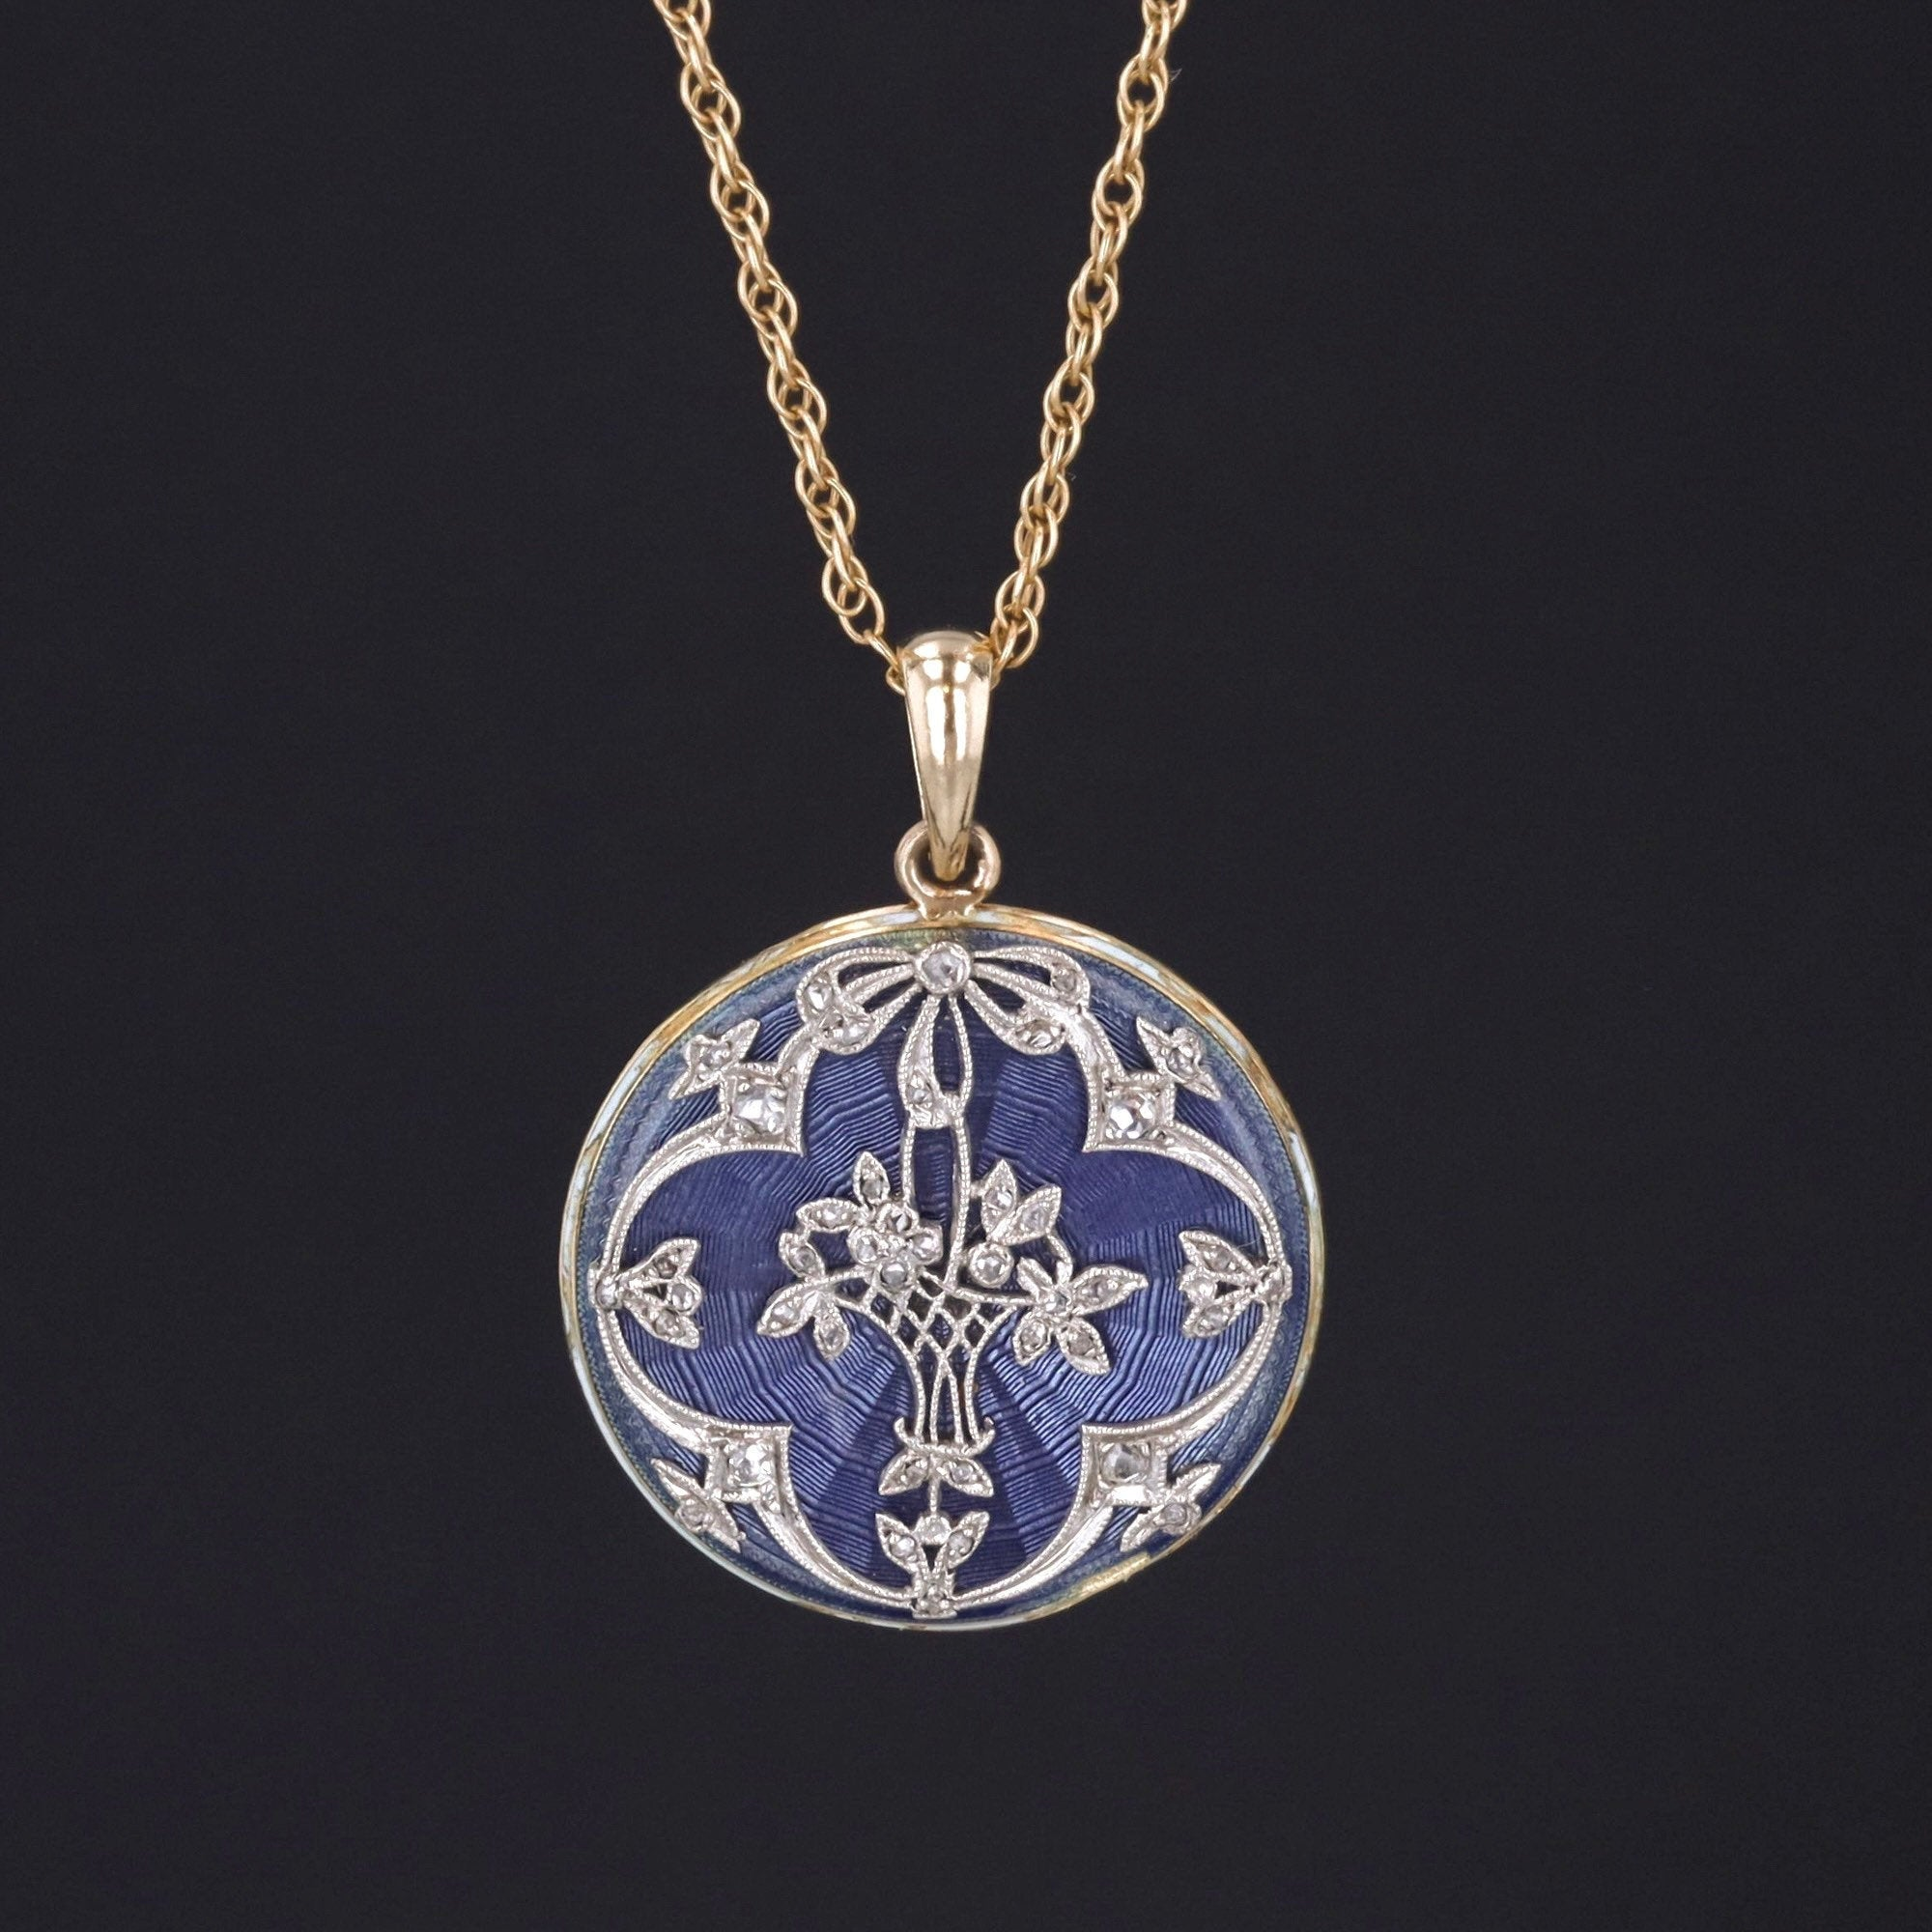 Antique Flower Basket Necklace | Diamond & Enamel Necklace | Antique Pin Conversion | Platinum and 18k Gold